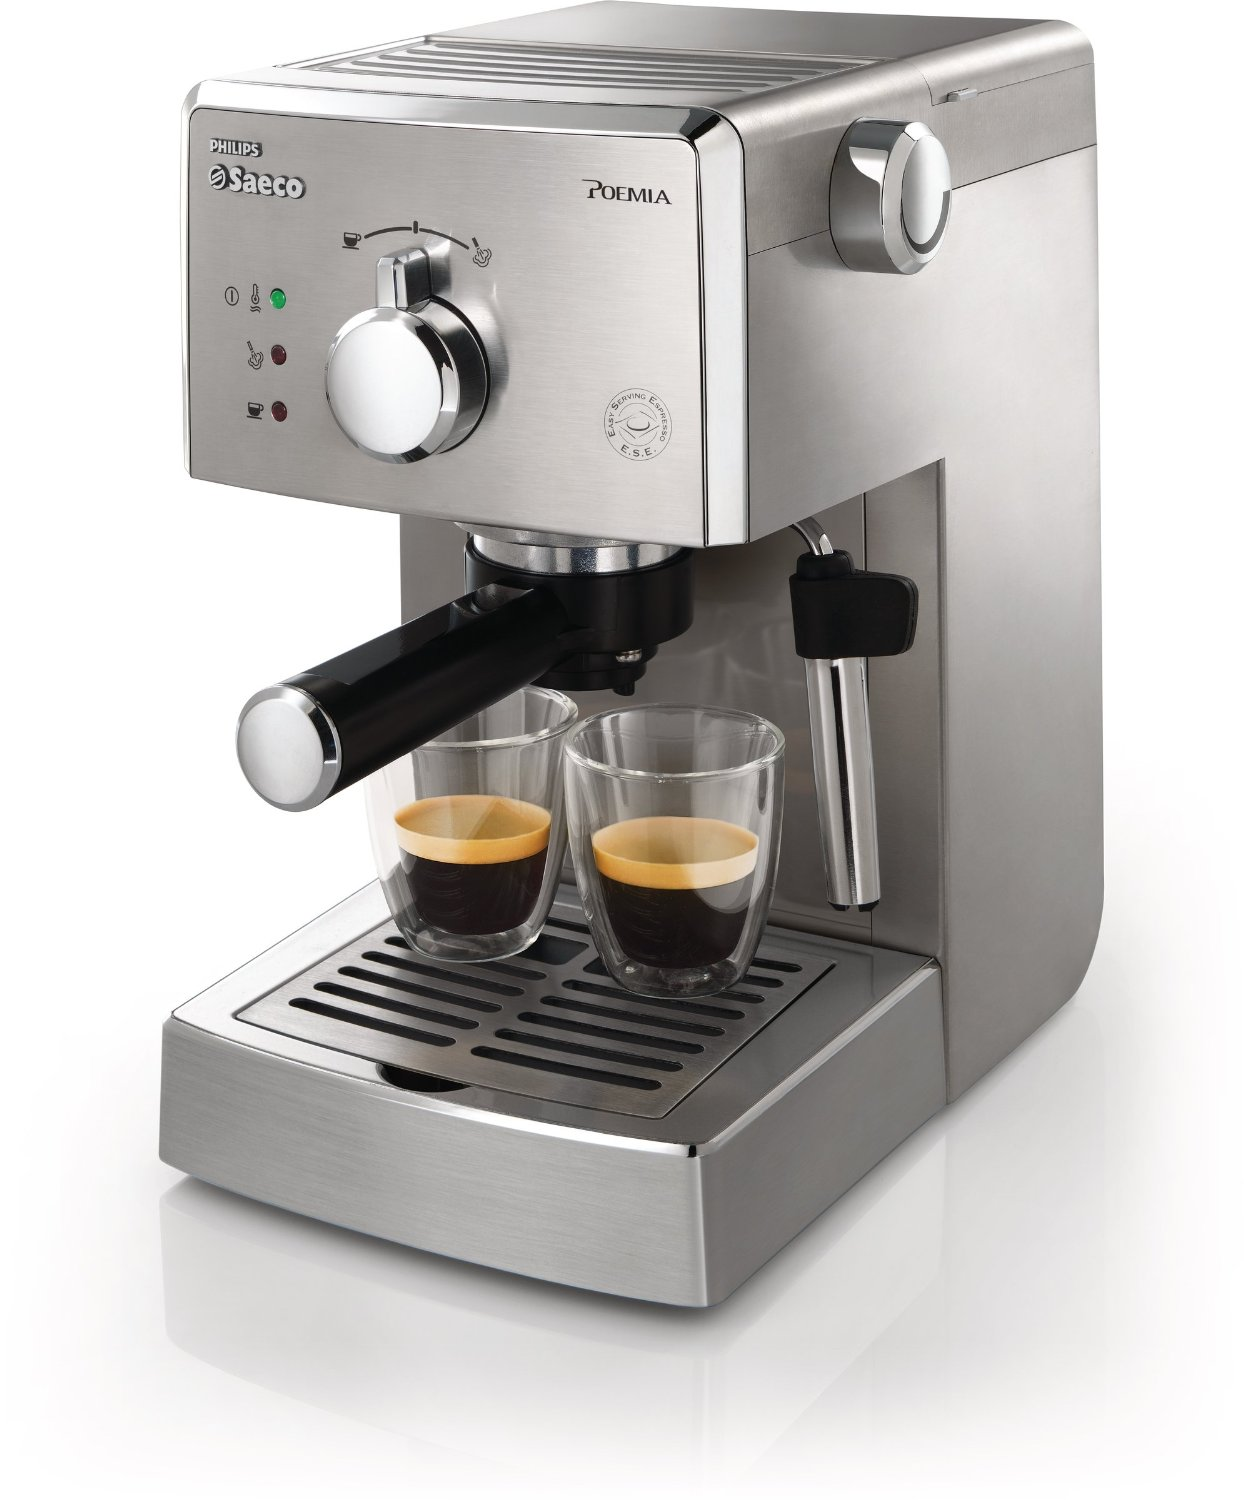 coffee machine reviews -Saeco HD8327/47 Poemia top Espresso Machine